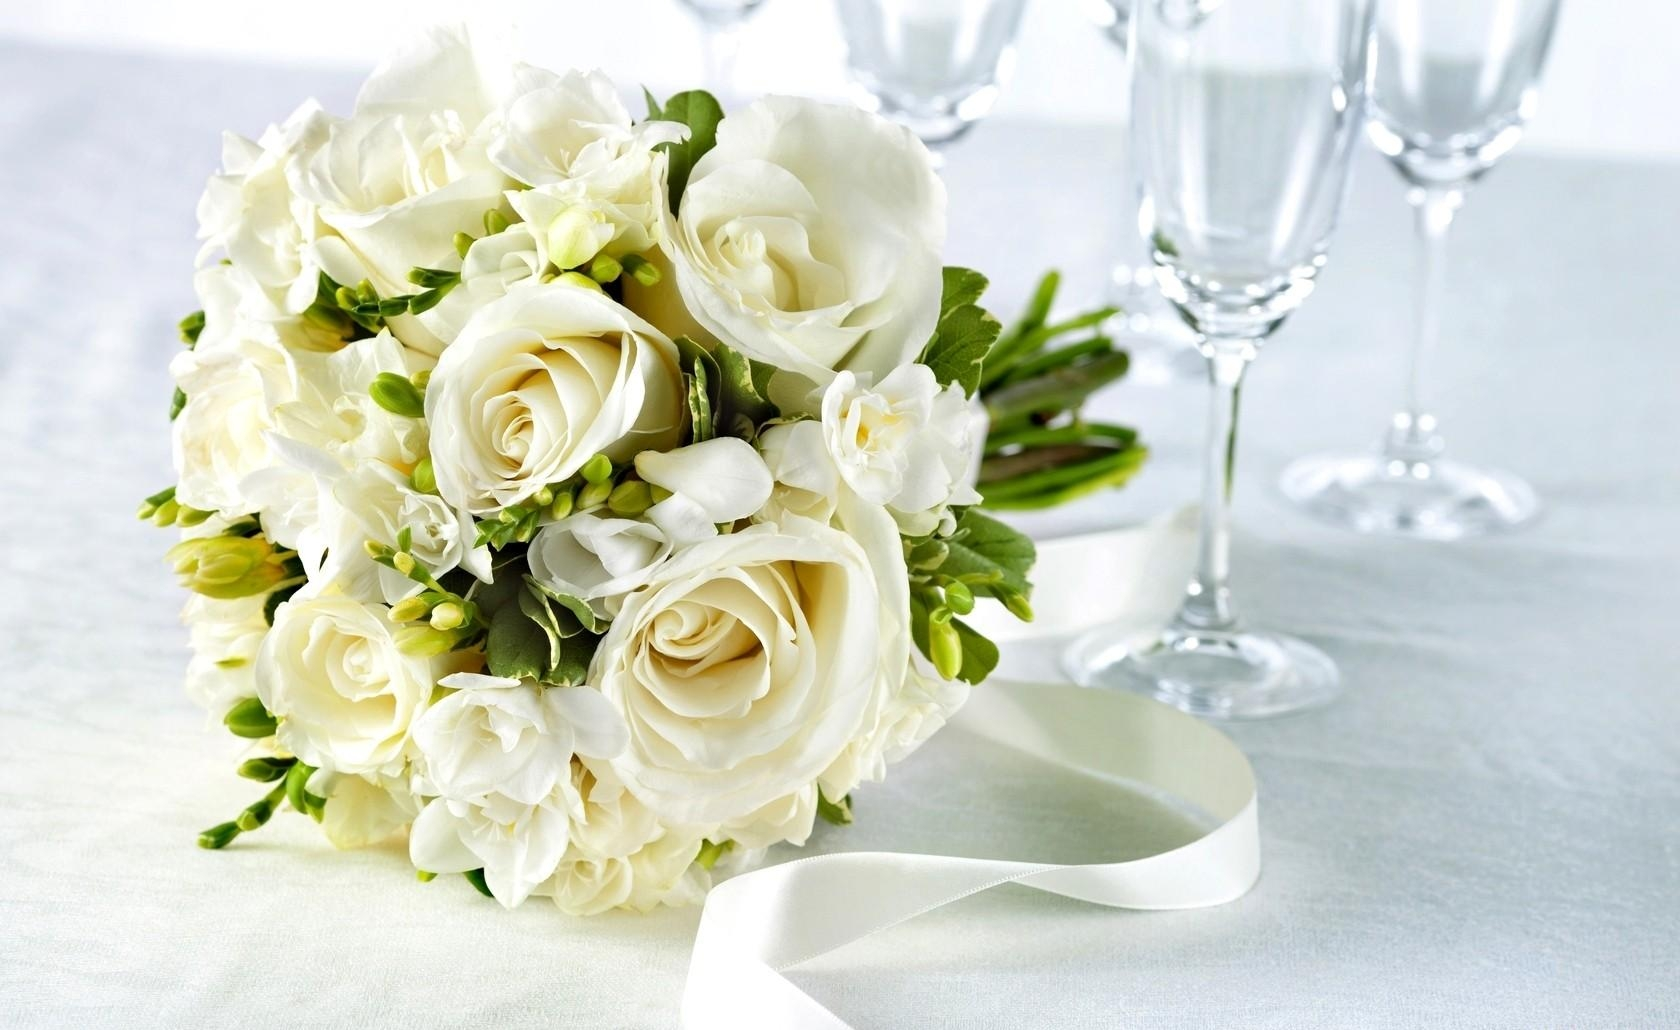 127655 download wallpaper Flowers, Freesia, Bouquet, Snow White, Snow-White, Goblets, Glasses, Tape, Roses screensavers and pictures for free